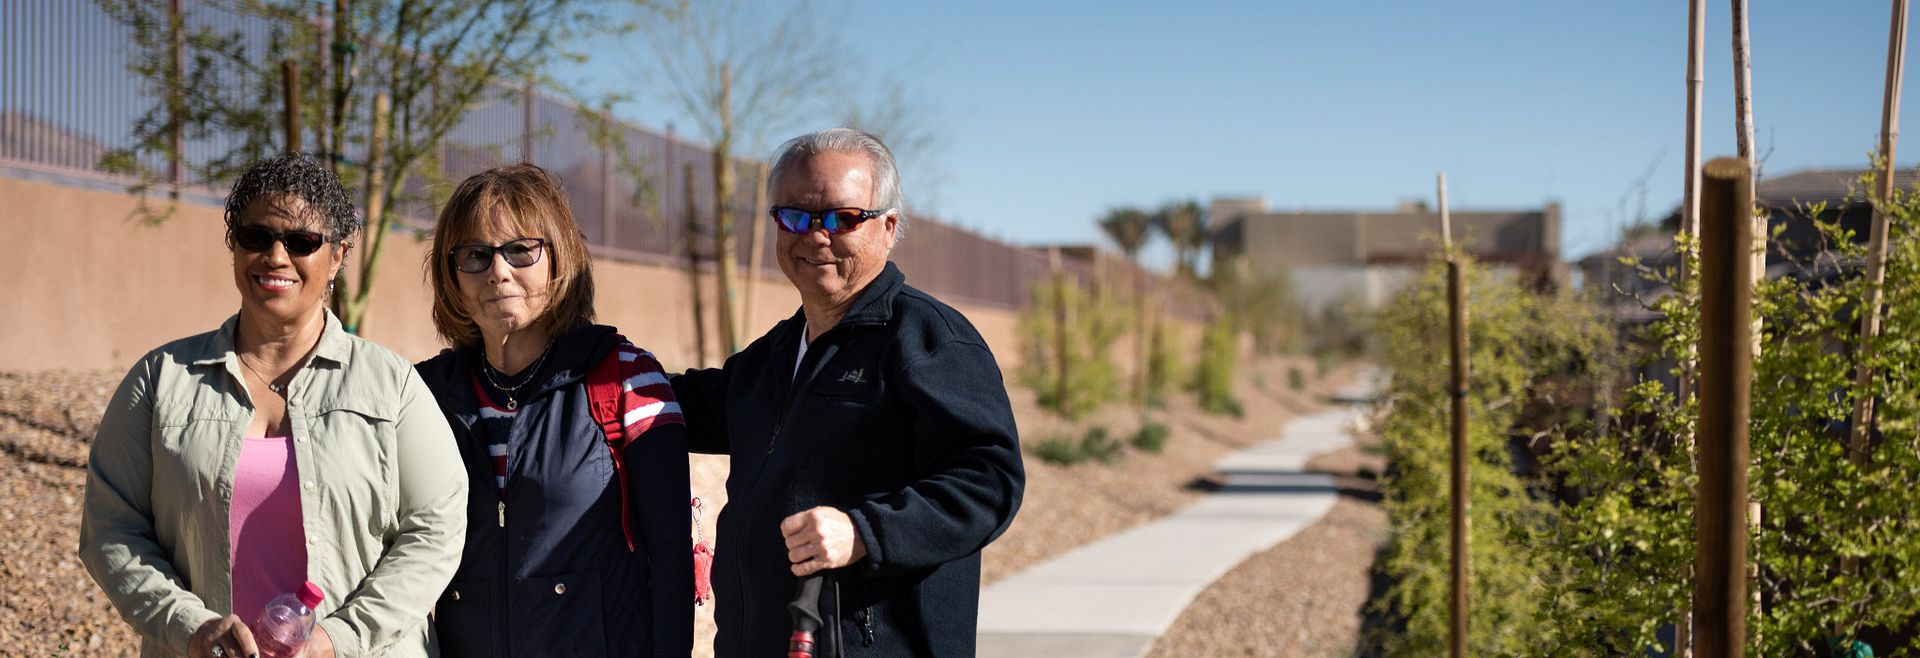 Trilogy Summerlin Homeowners Hiking